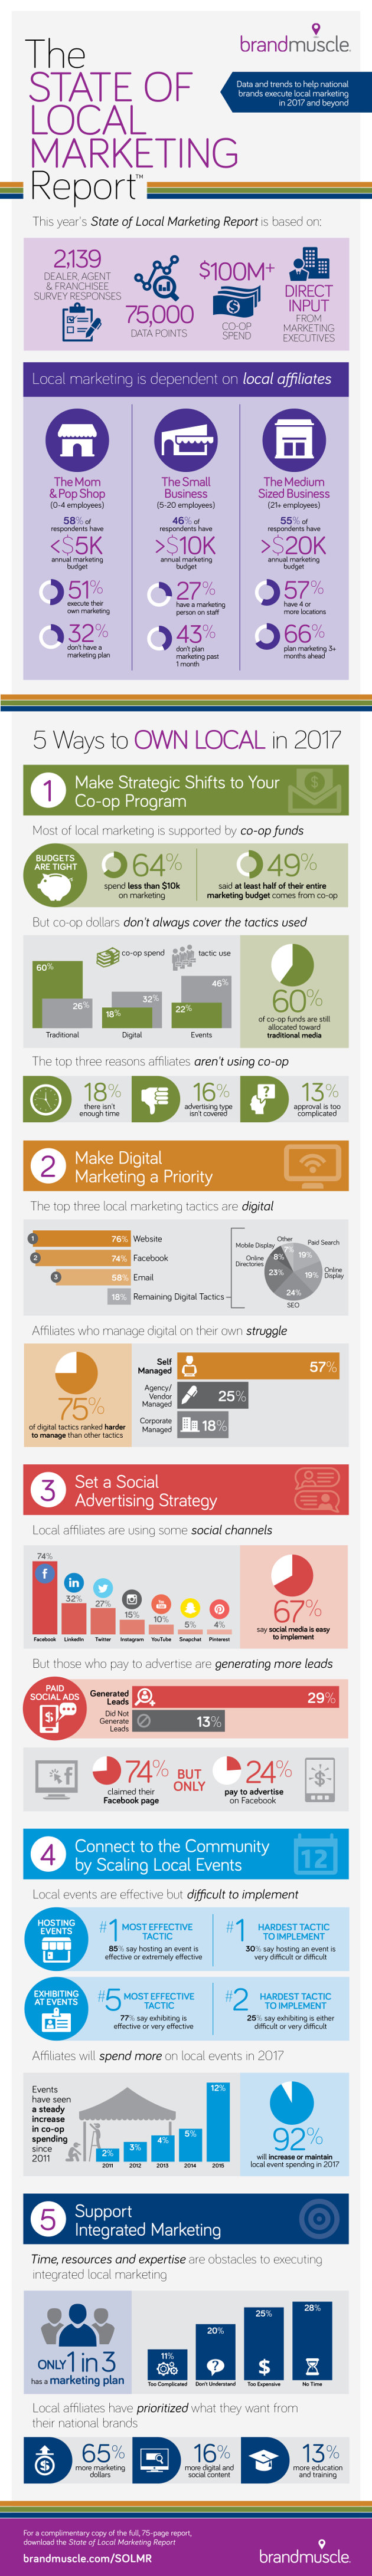 Infografica Local Marketing - Guida introduttiva al social media marketing per le imprese locali